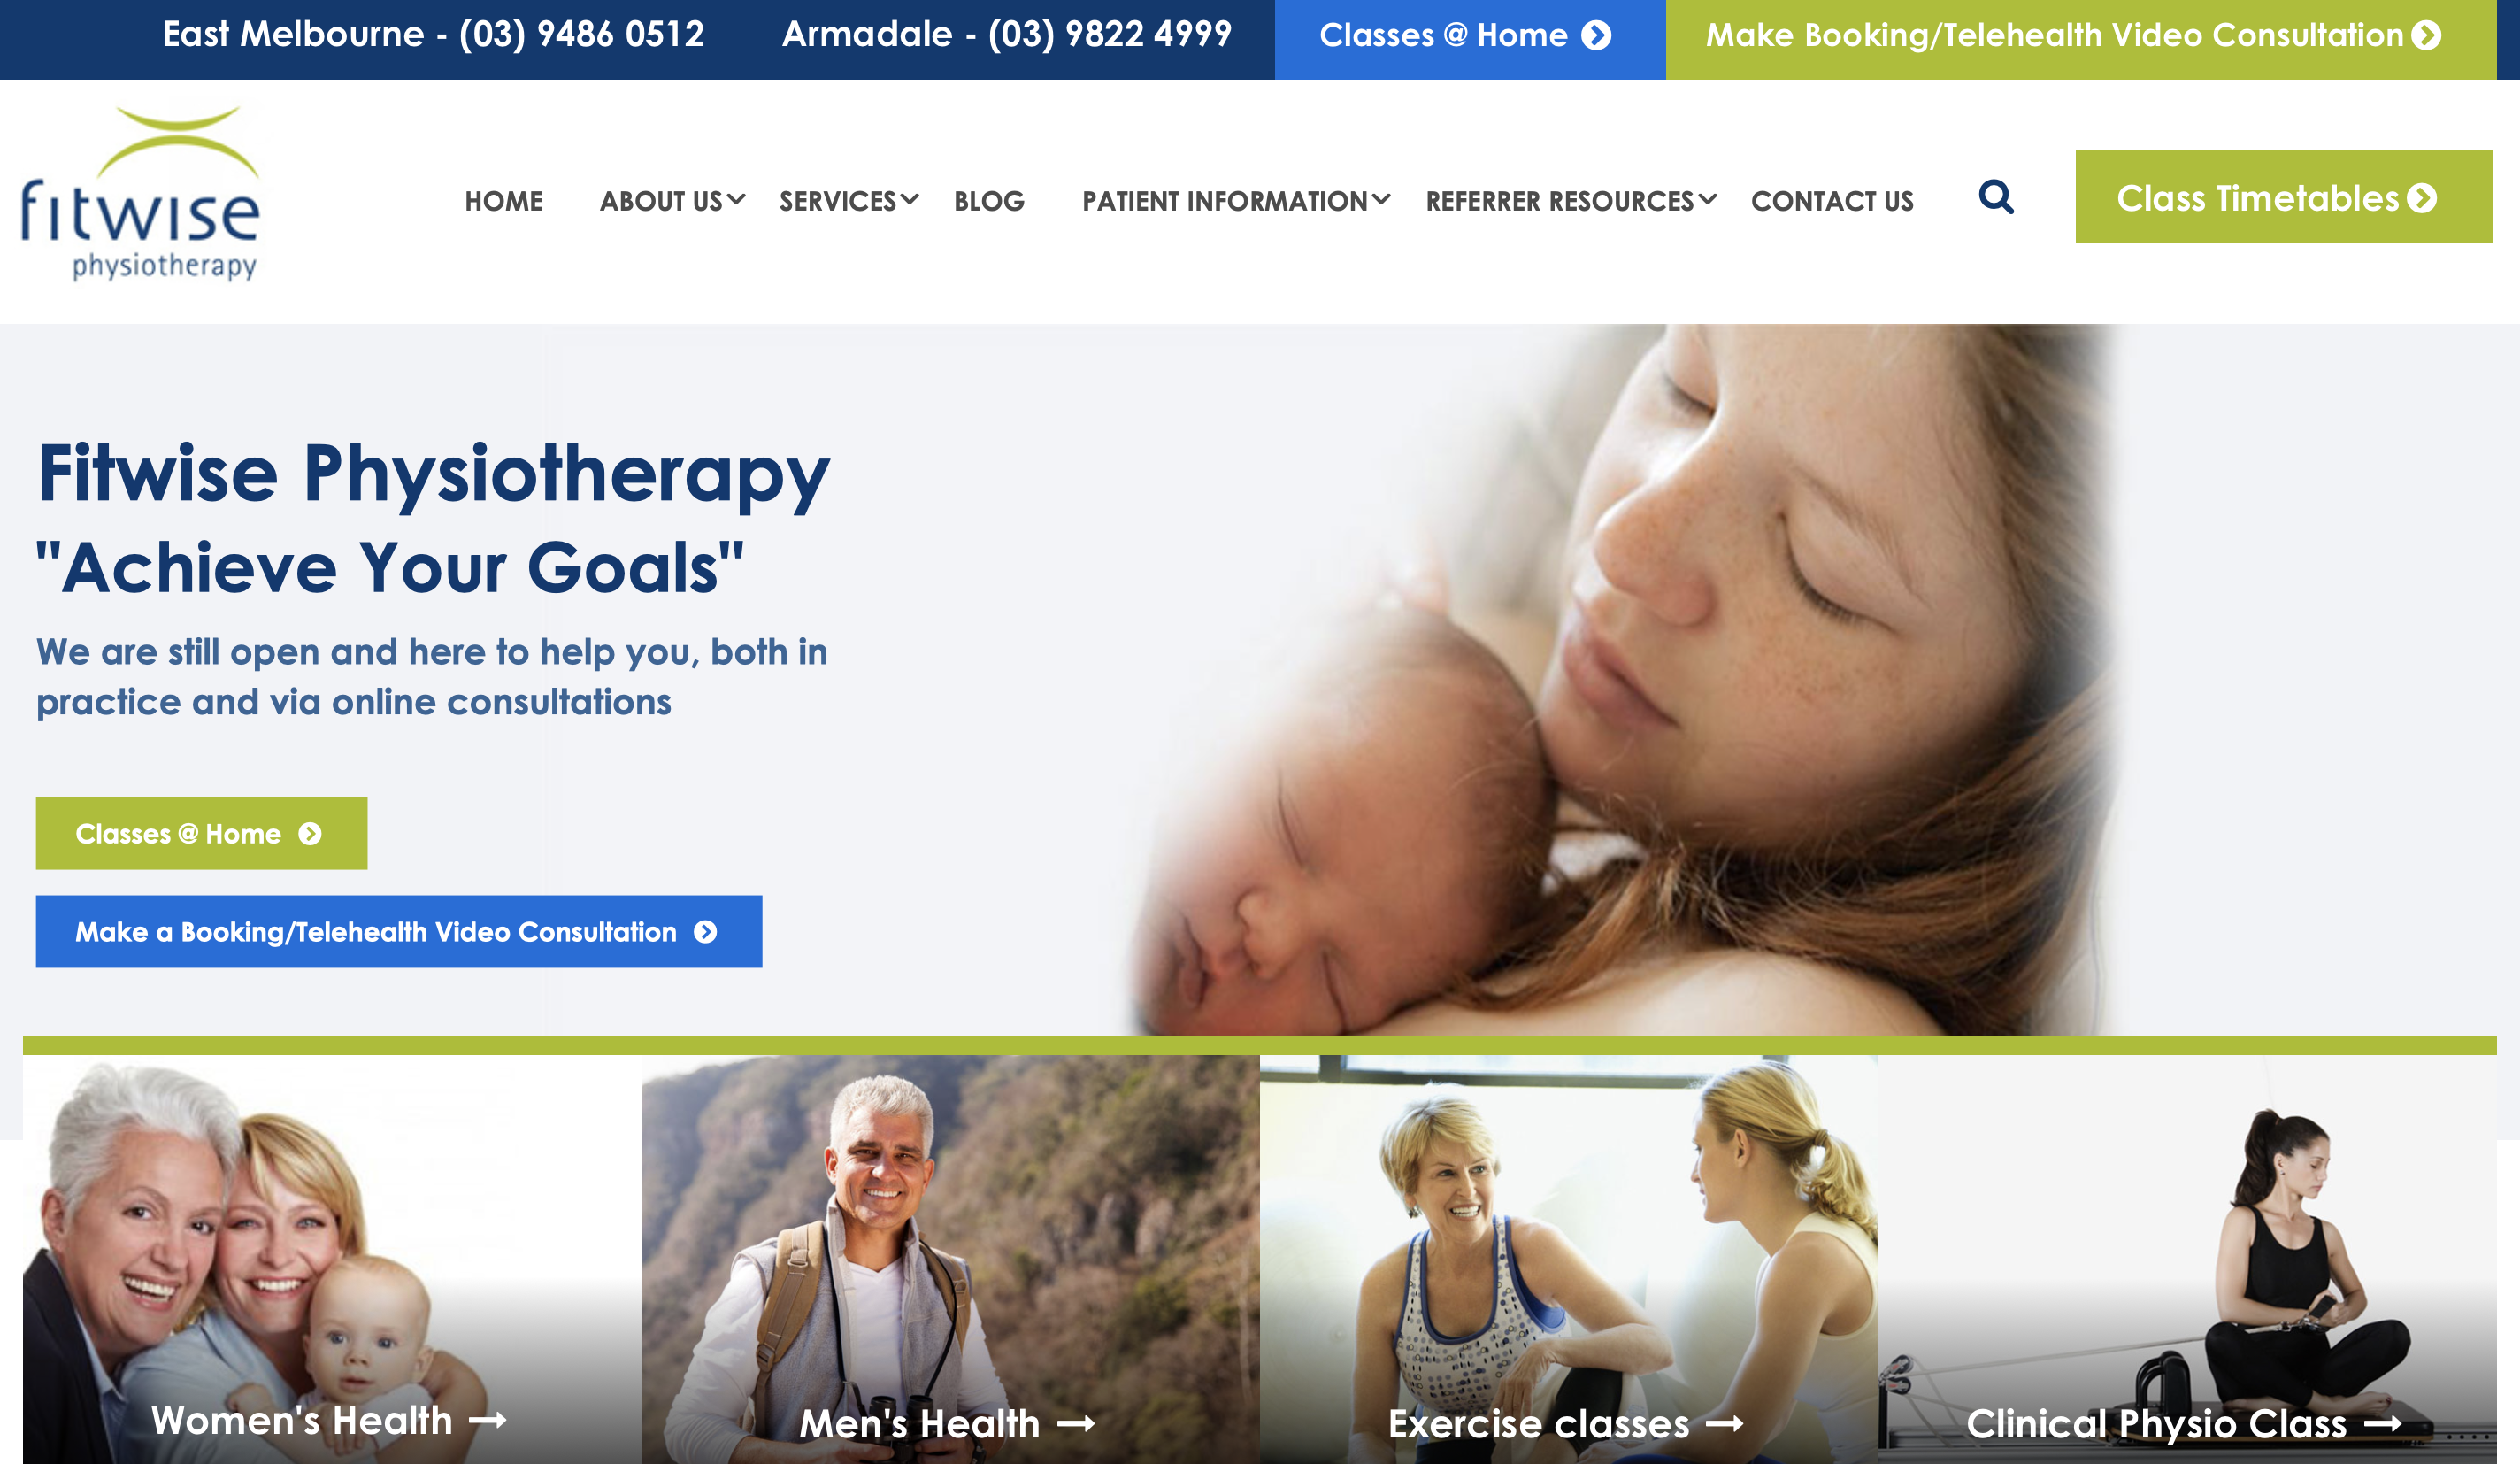 Fitwise Physiotherapy healthcare web design